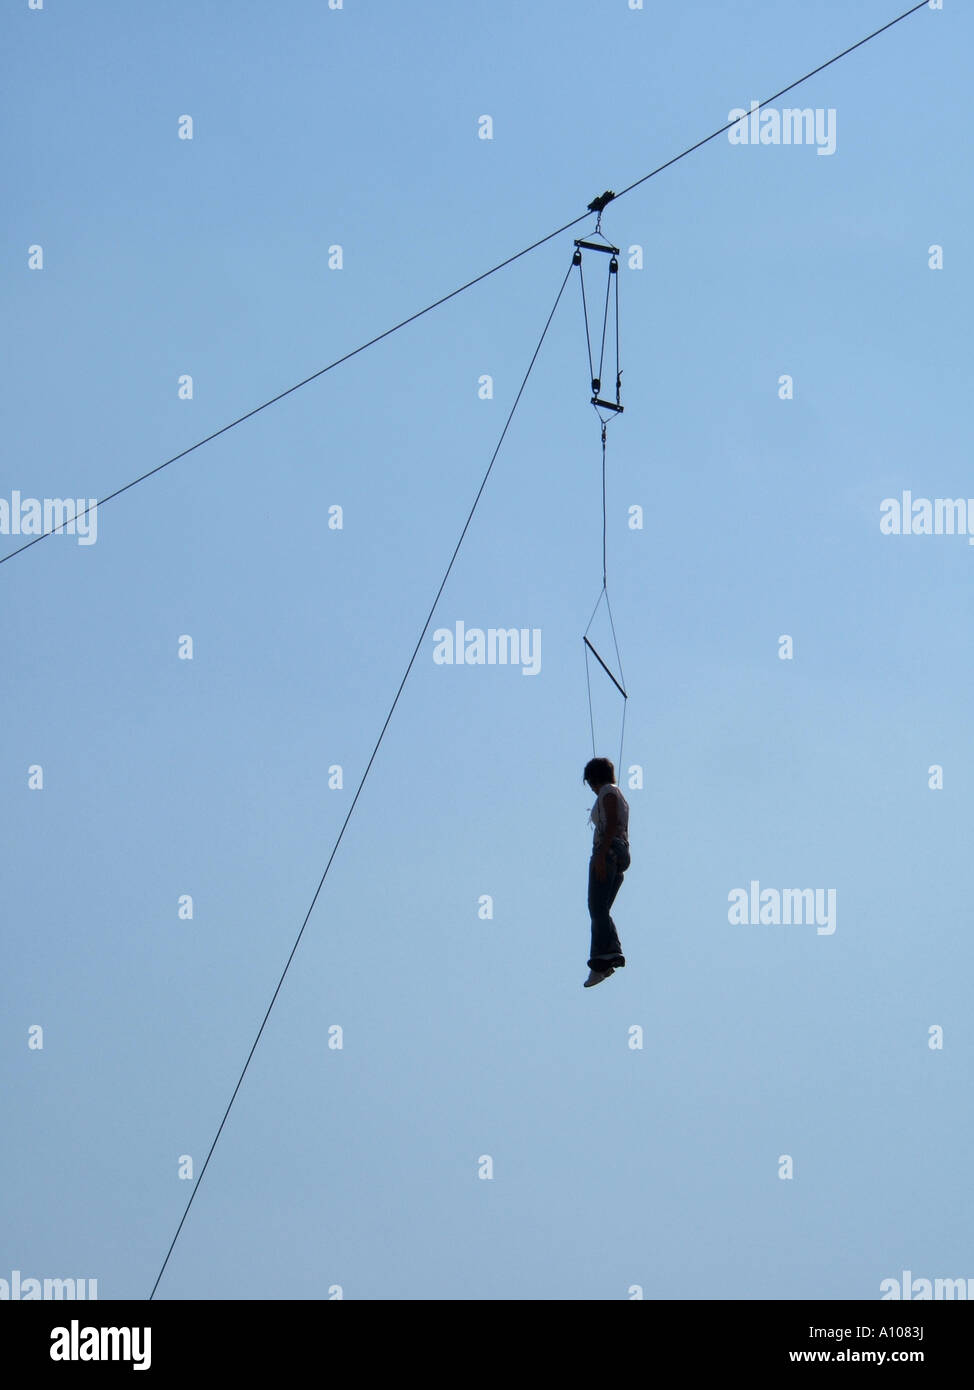 woman entertainer trapeze artist hanging on high wire rope stock stock photo woman entertainer trapeze artist hanging on high wire rope